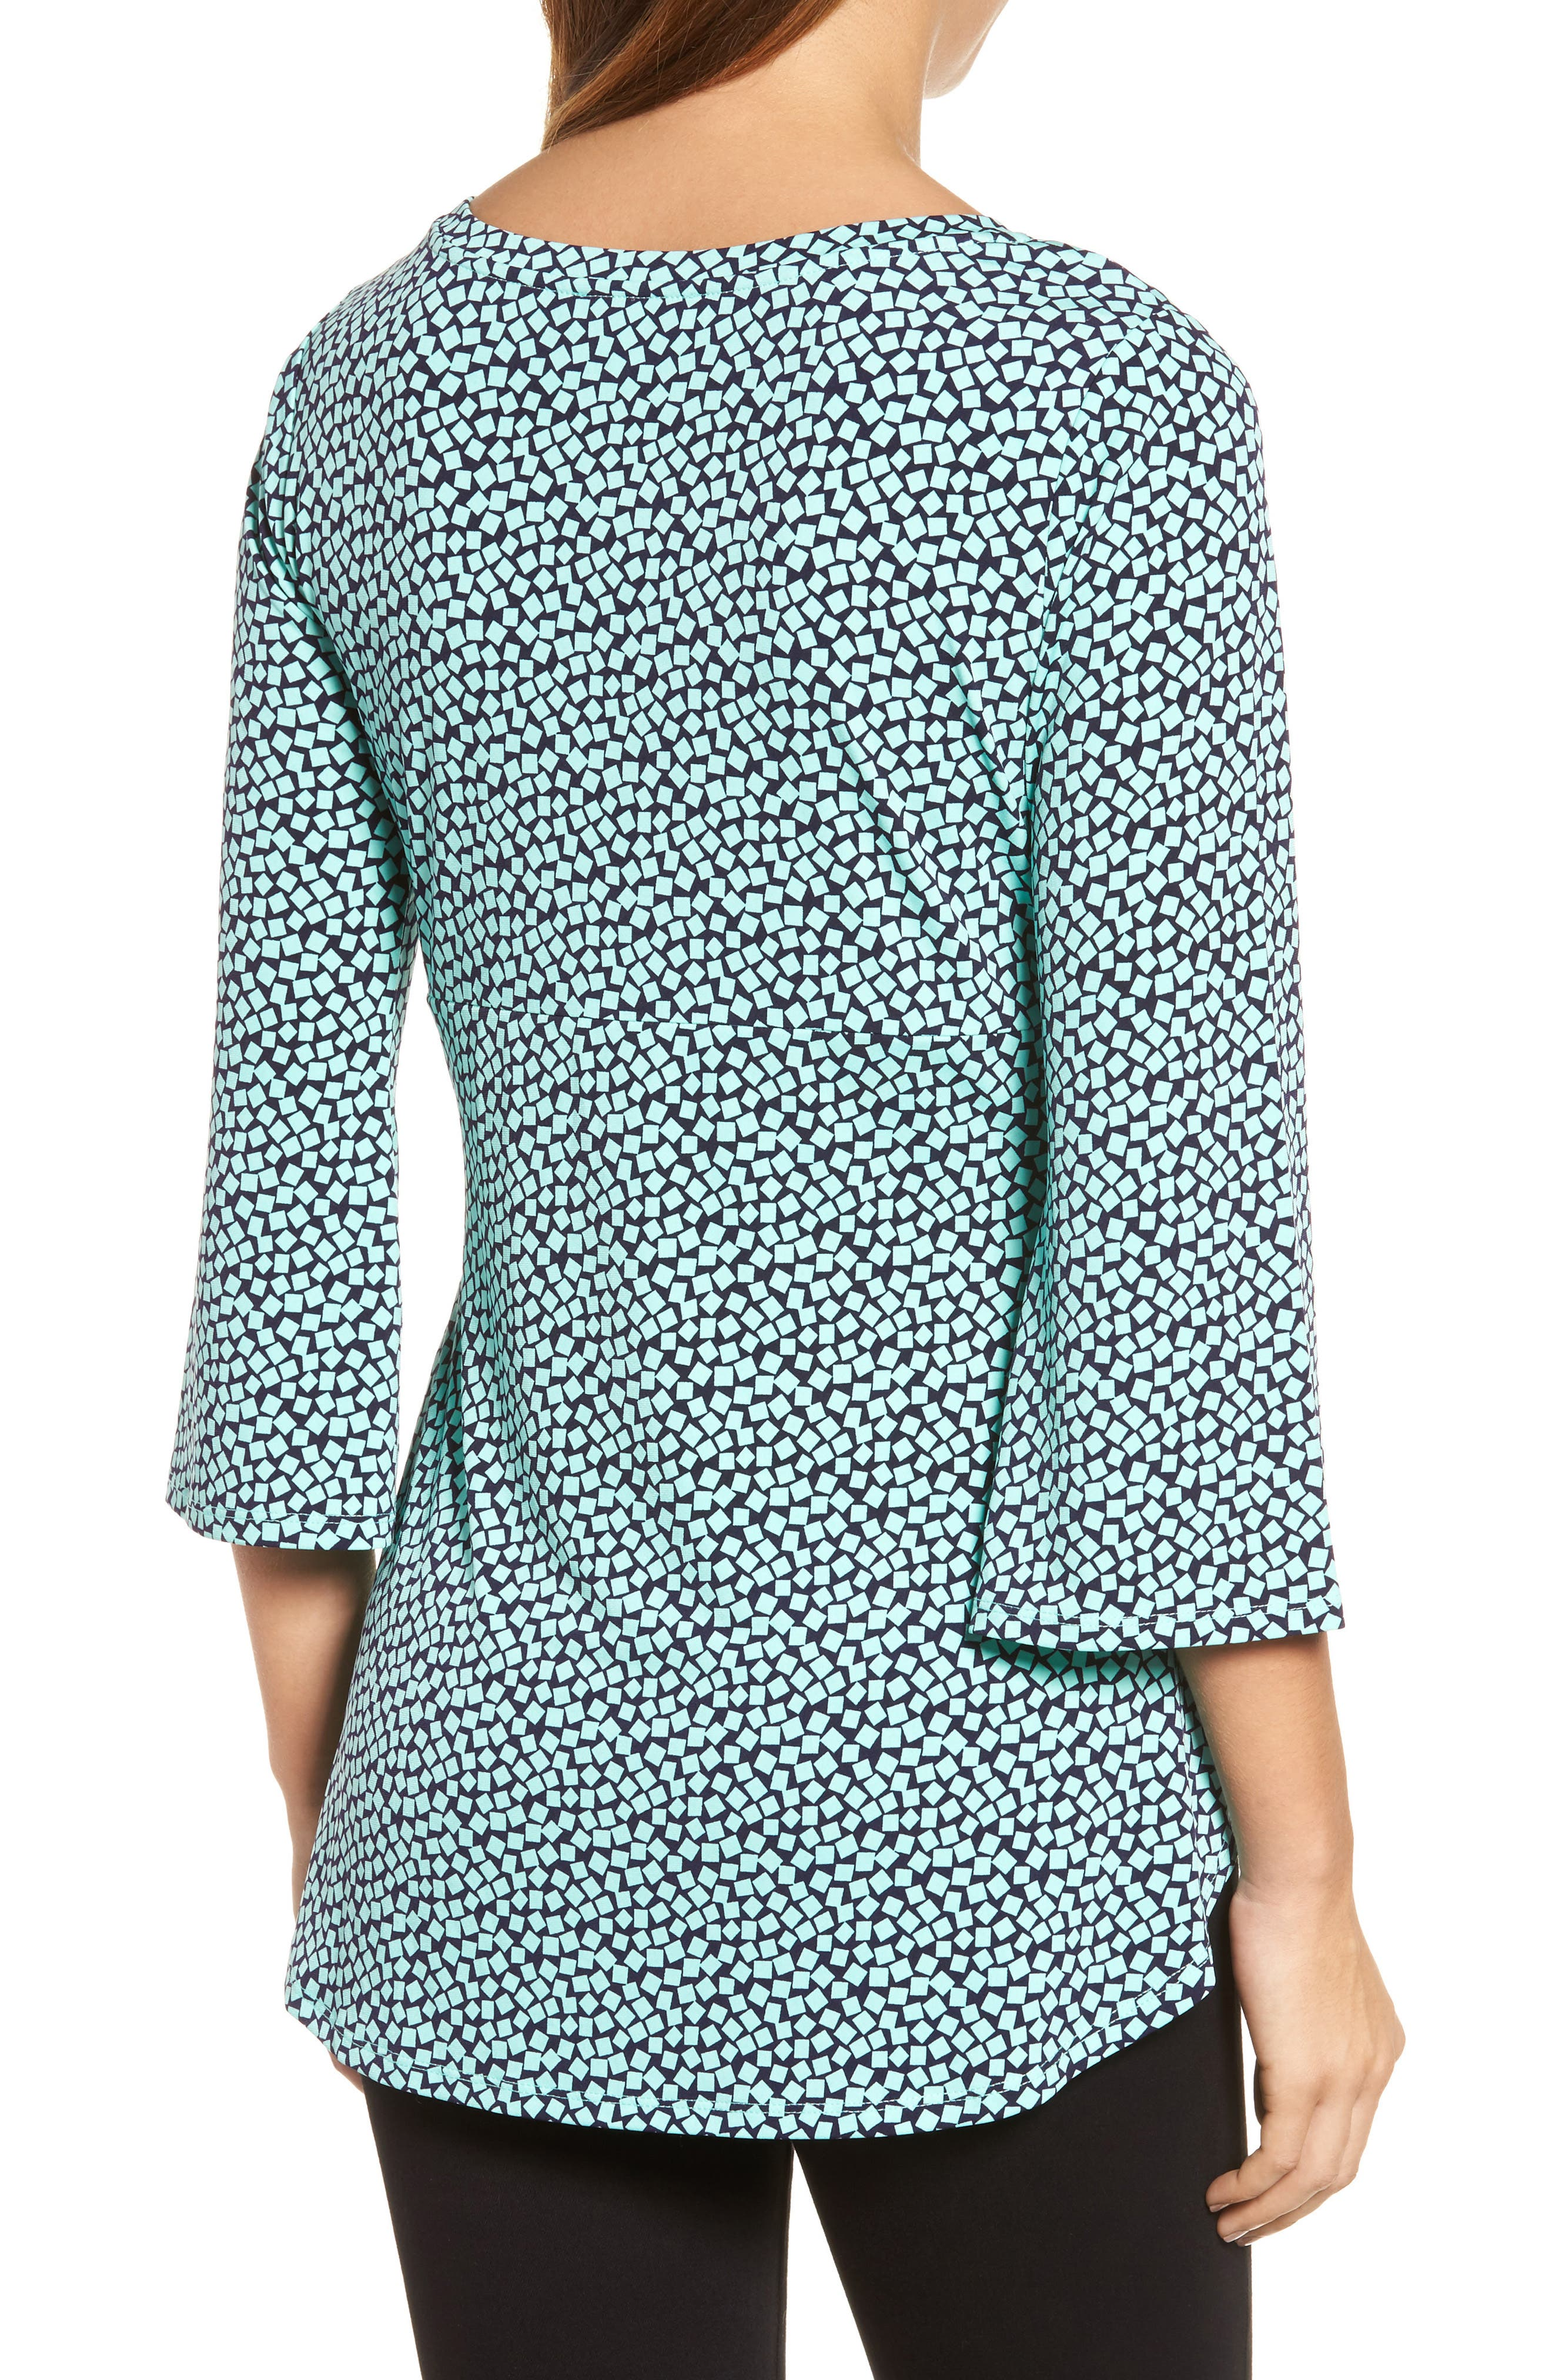 Bell Sleeve Cube Print Top,                             Alternate thumbnail 2, color,                             336